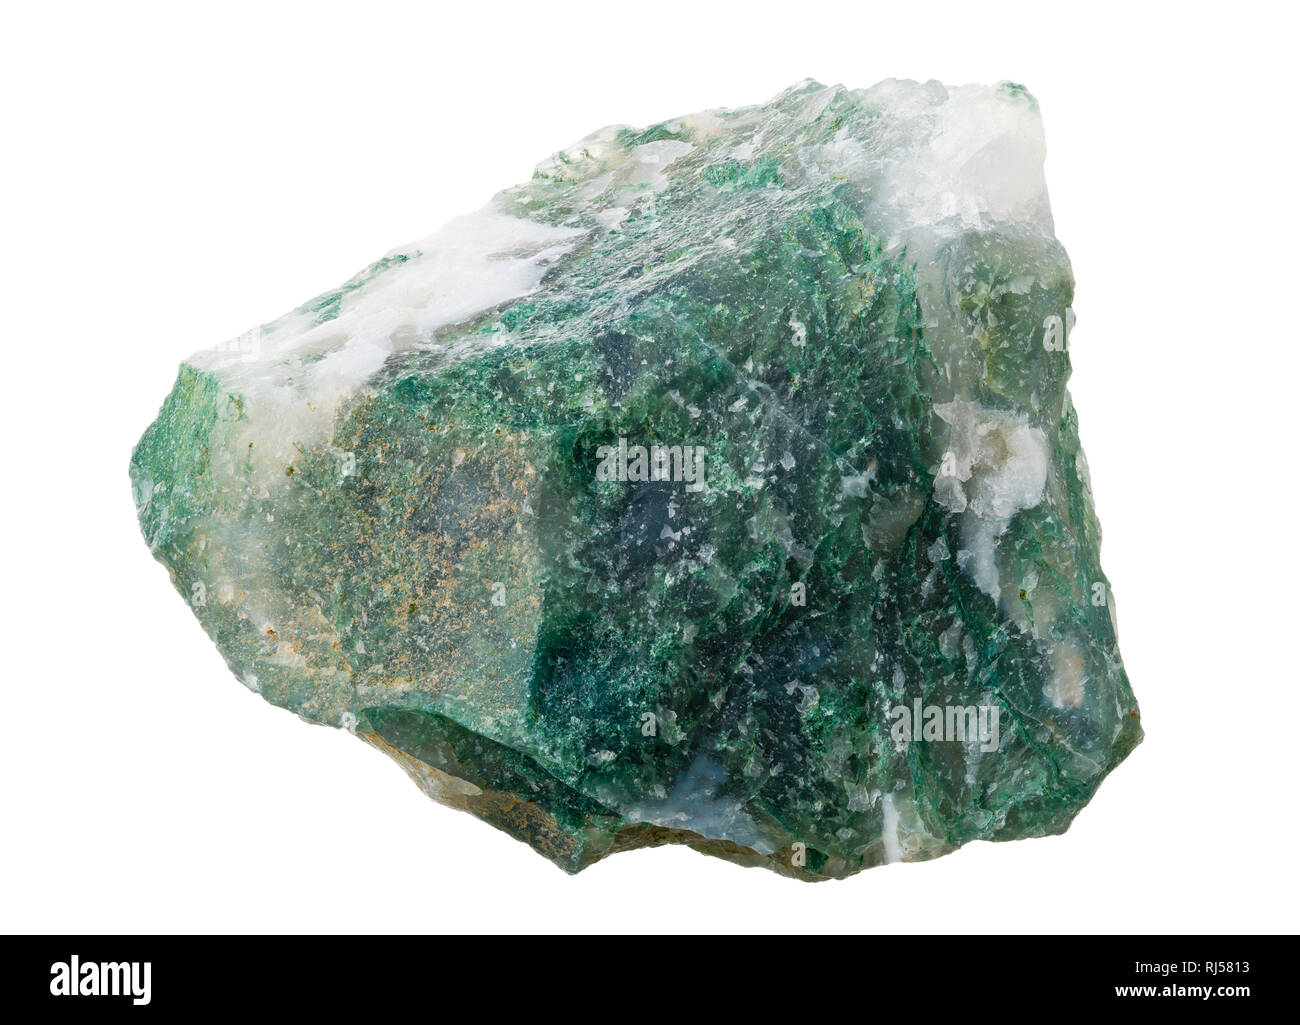 Moss agate (SiO2), a form of chalcedony, specimen from India isolated on white background - Stock Image